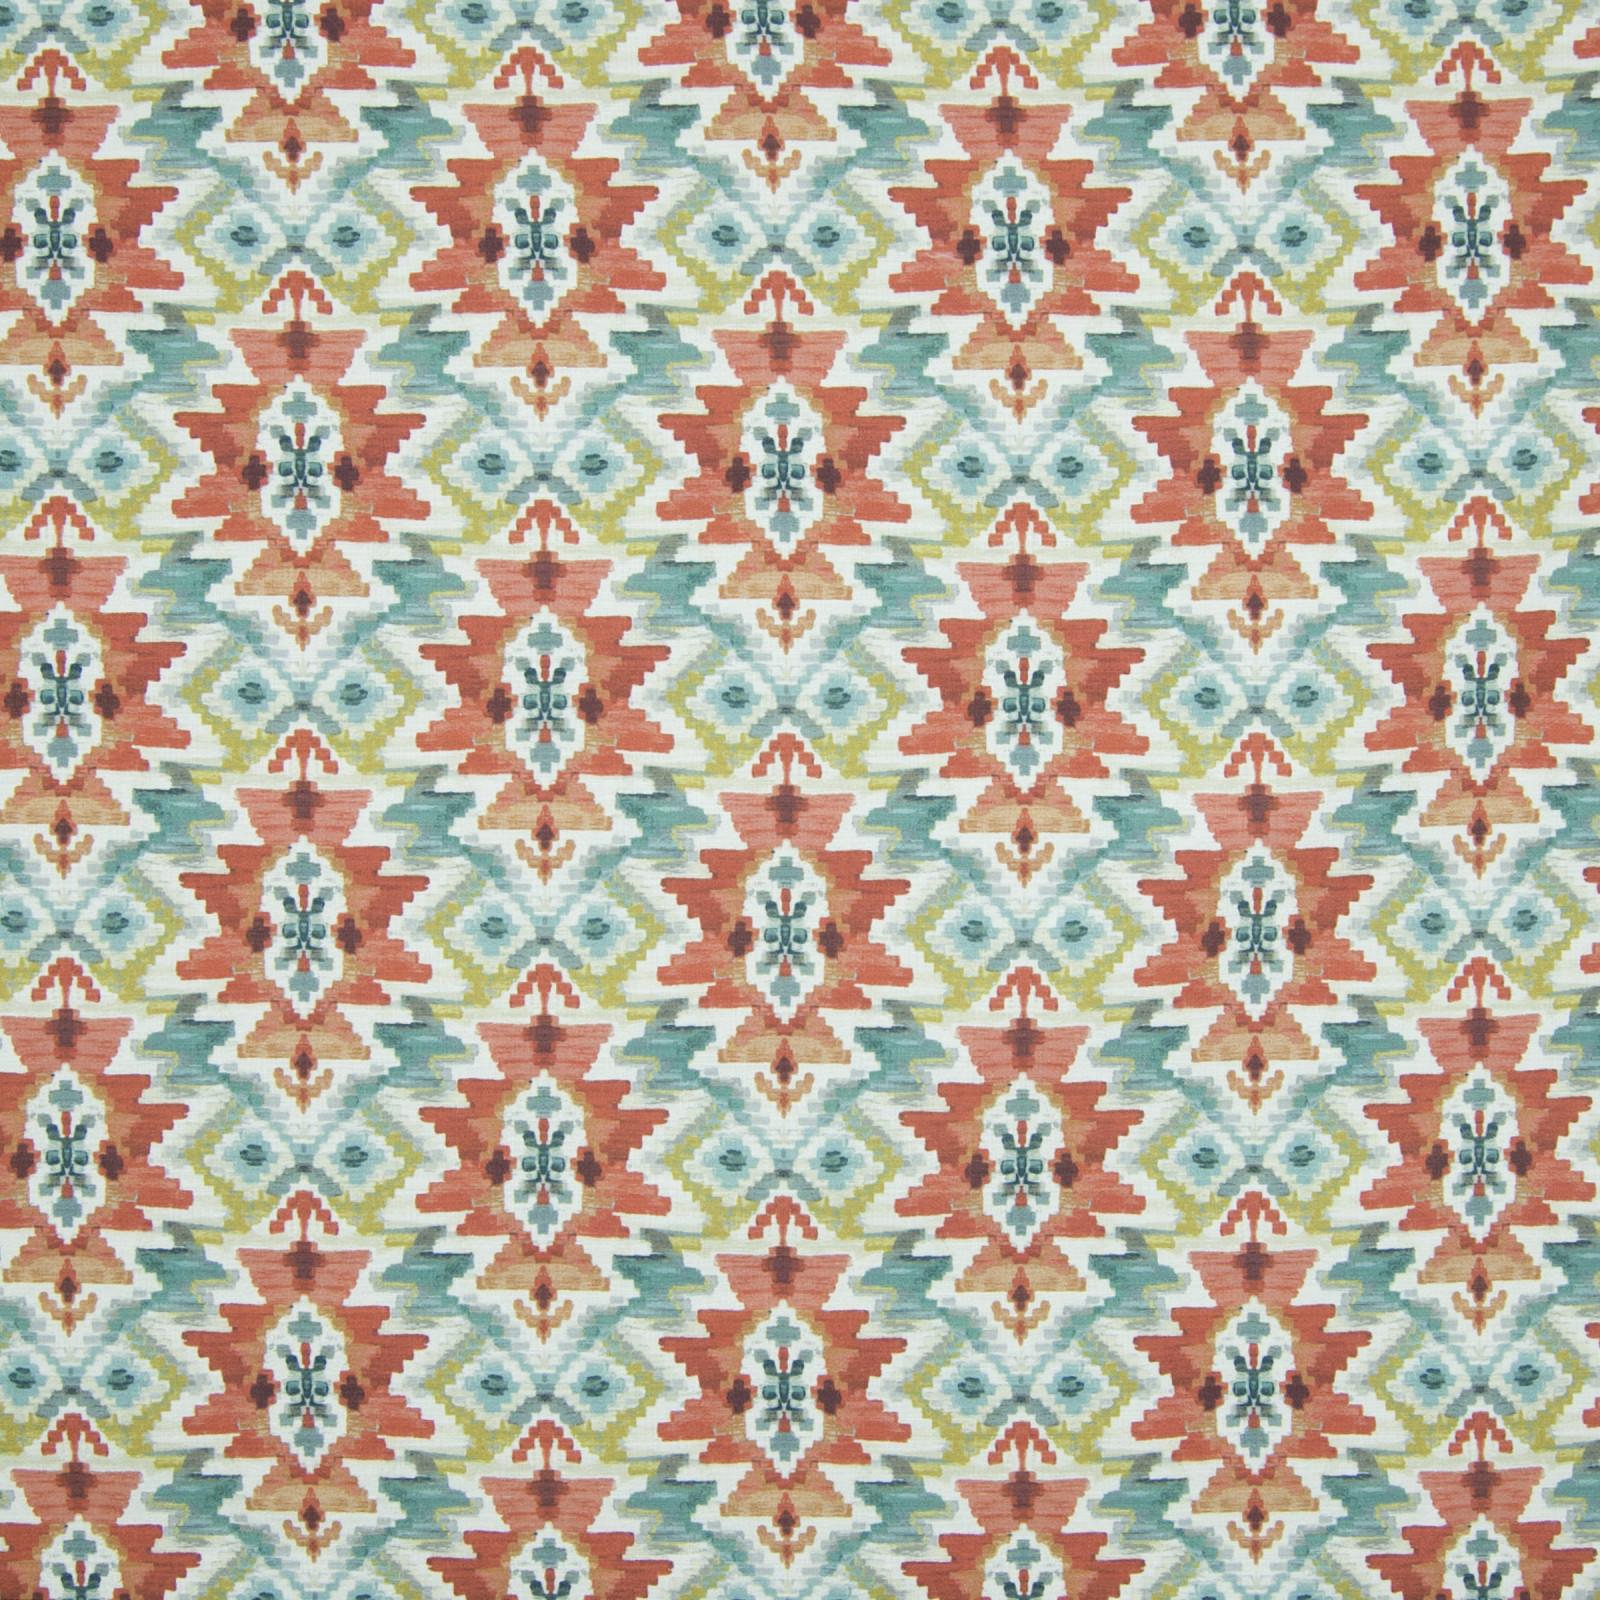 B7055 Southwest Greenhouse Fabrics